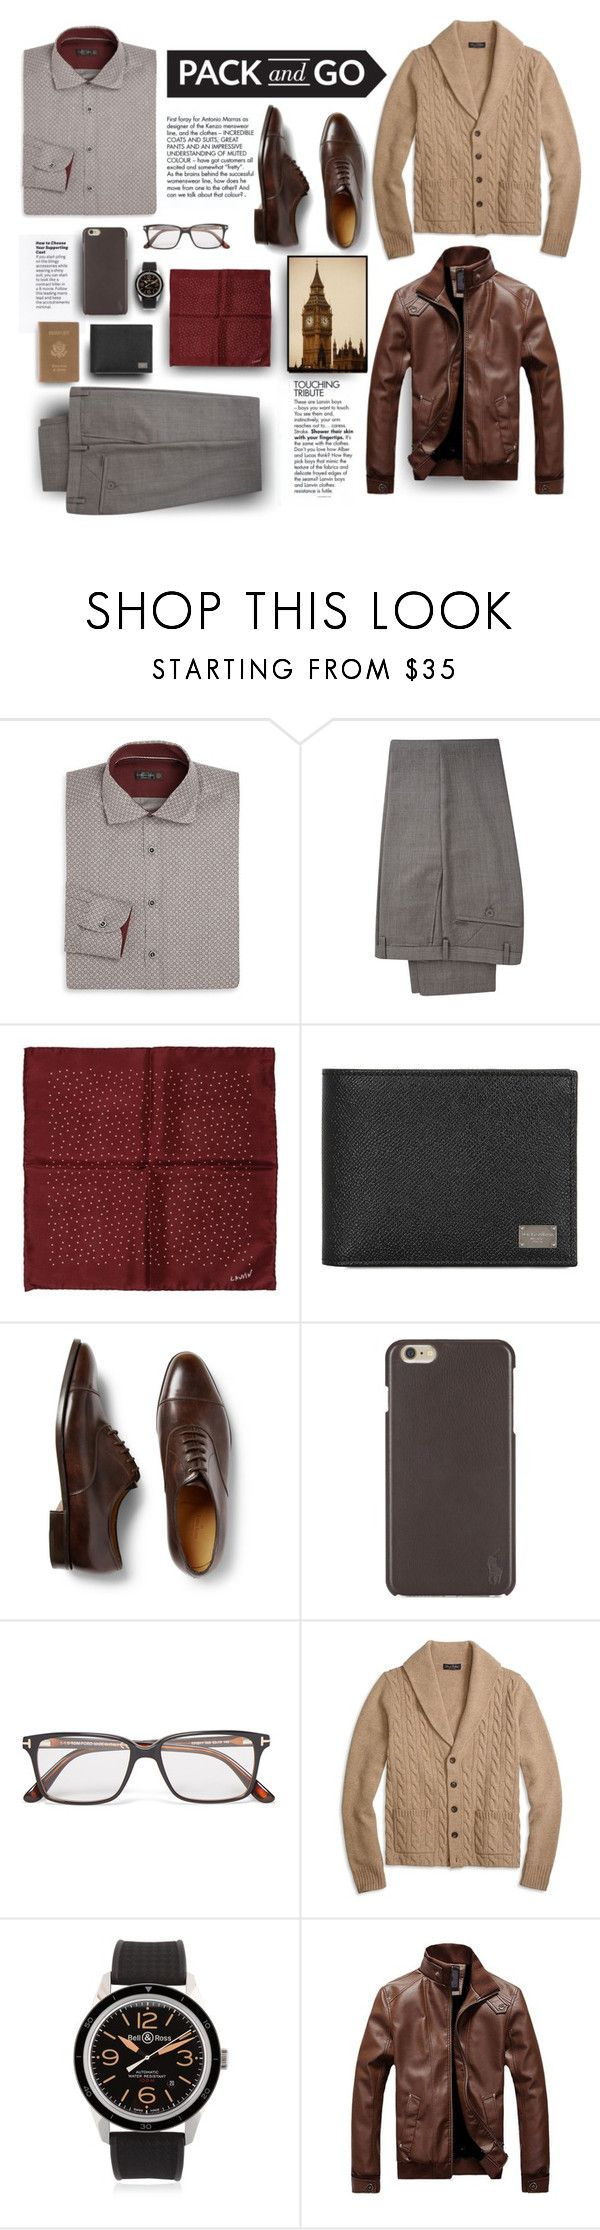 """""""Lad Go To London"""" by maggiecakes ❤ liked on Polyvore featuring Corneliani, DKNY, Lanvin, Dolce&Gabbana, Kenzo, John Lobb, Polo Ralph Lauren, Tom Ford, Brooks Brothers and Bell & Ross"""